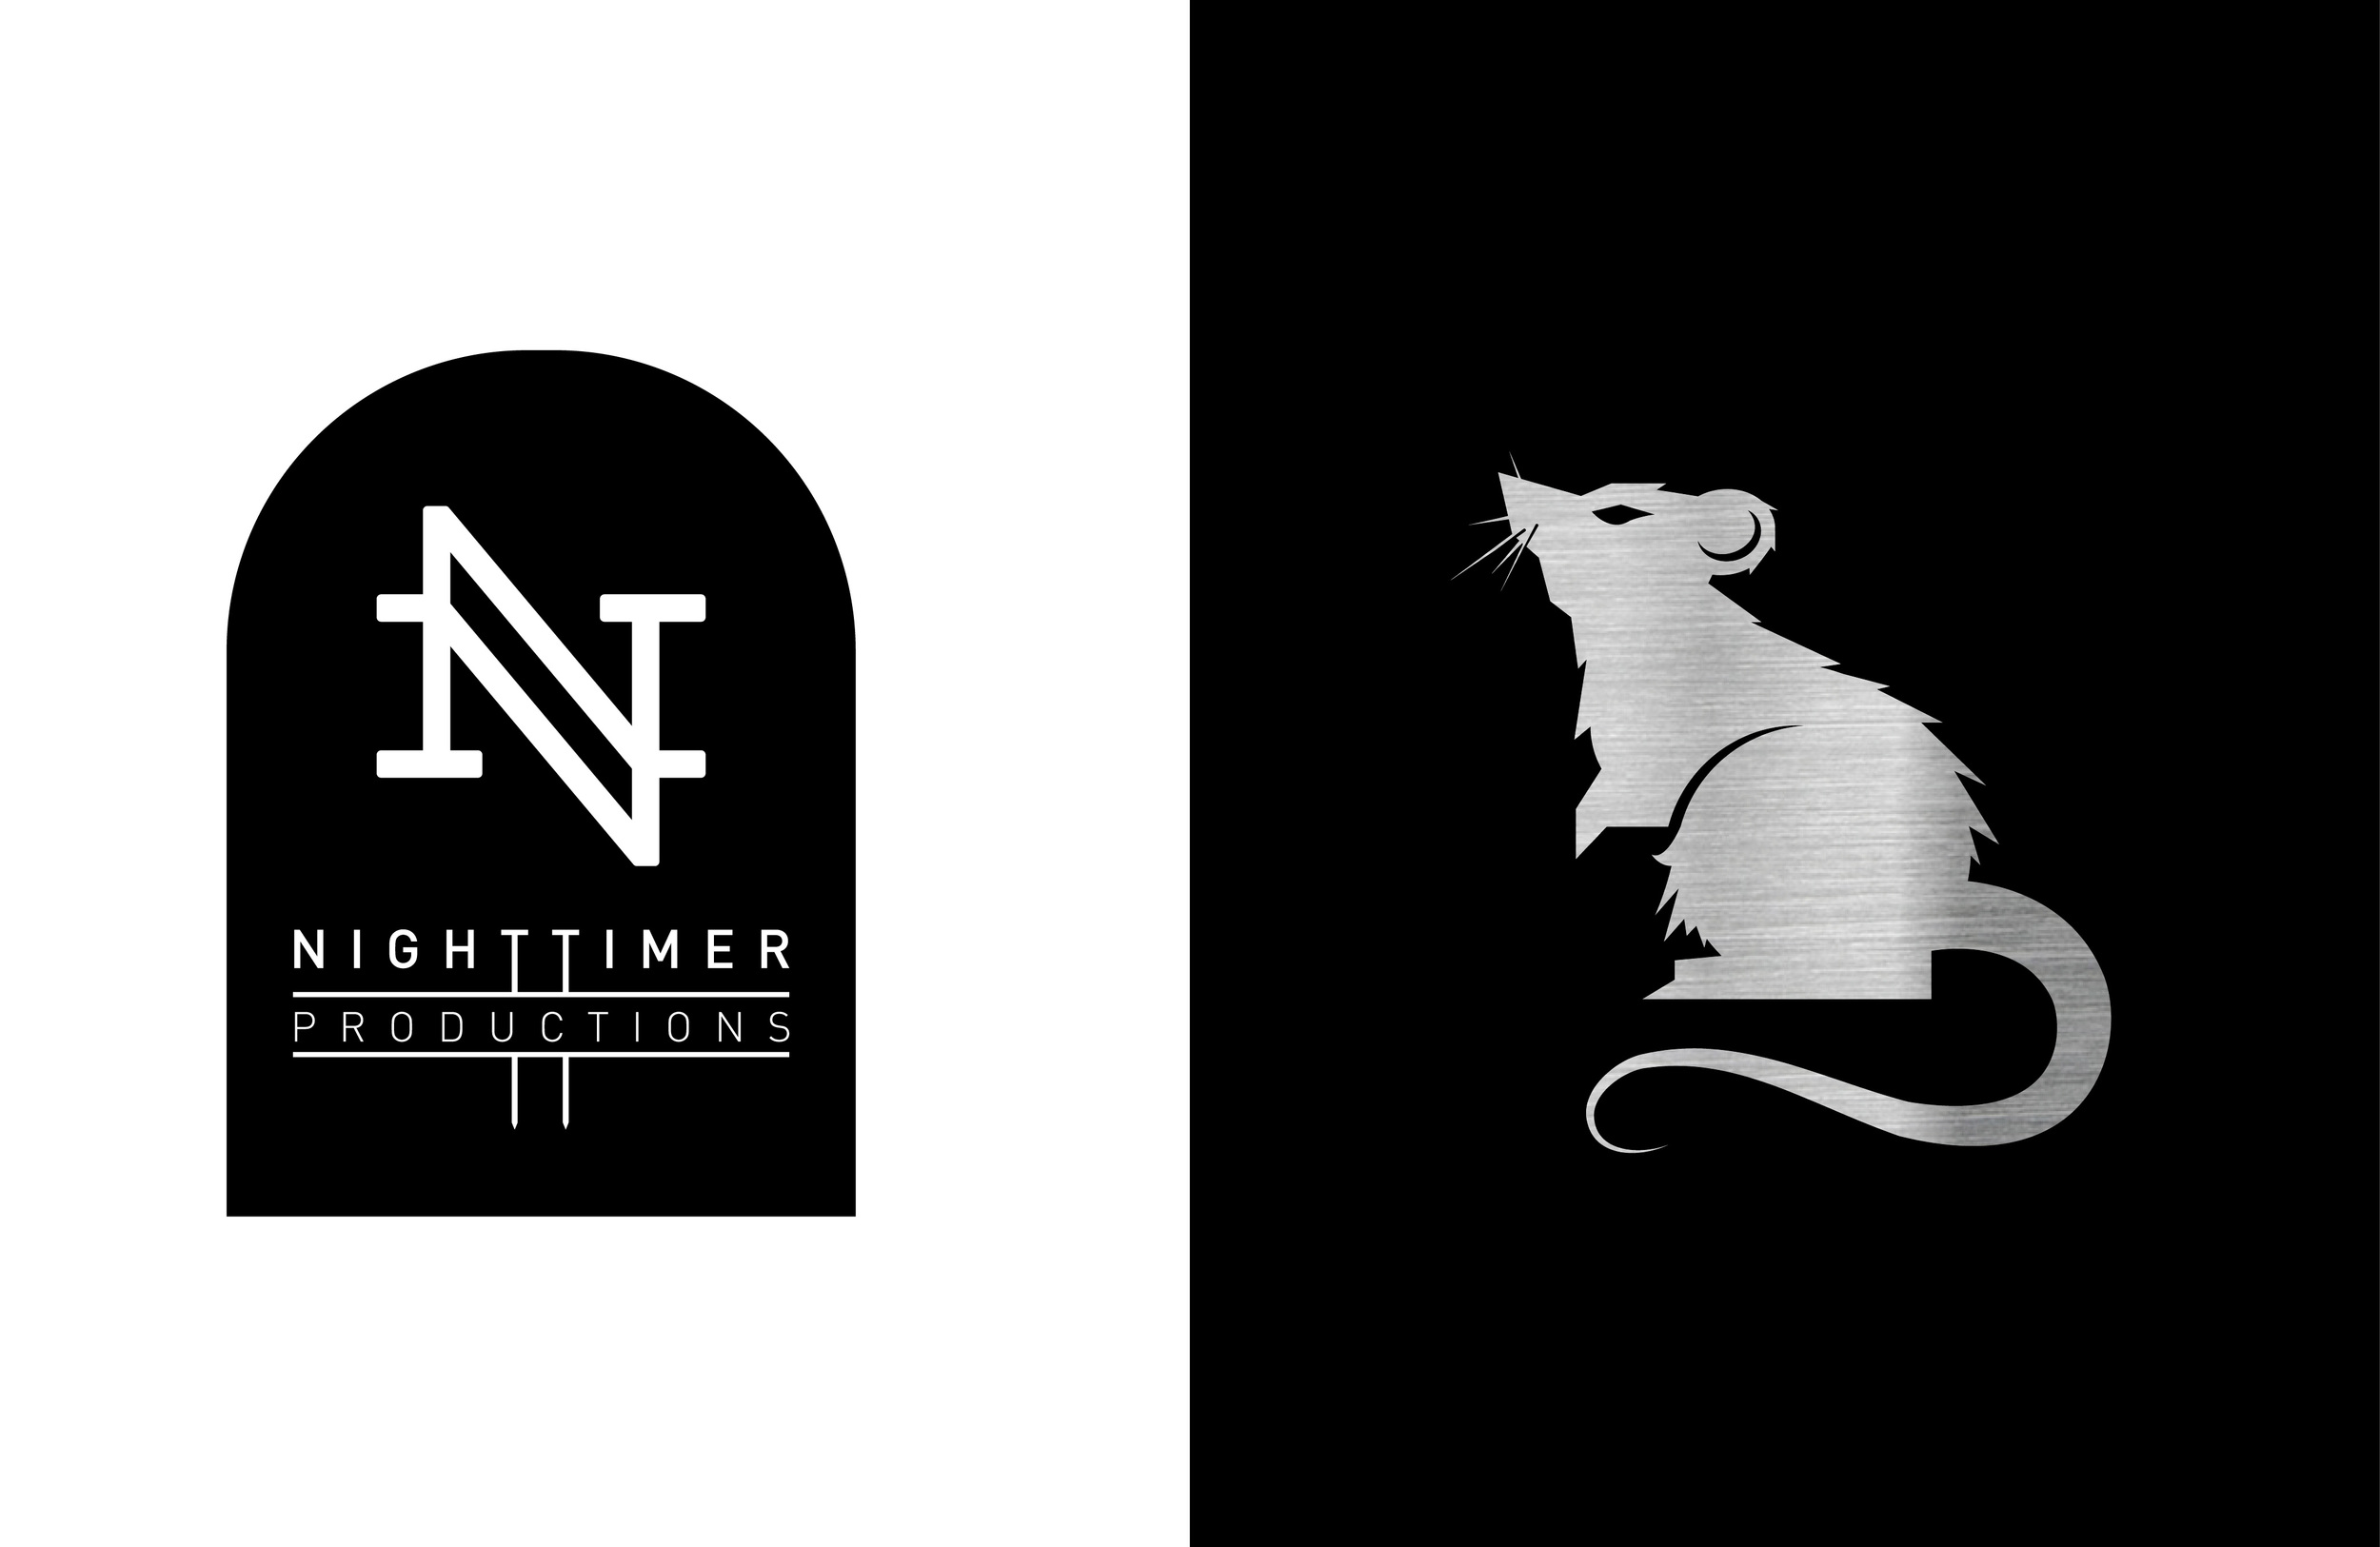 Tomb logo variant and city rat detail. Based on the ongoing theme of urban life and the later hours, the rat symbol was chosen as a mascot by the client.